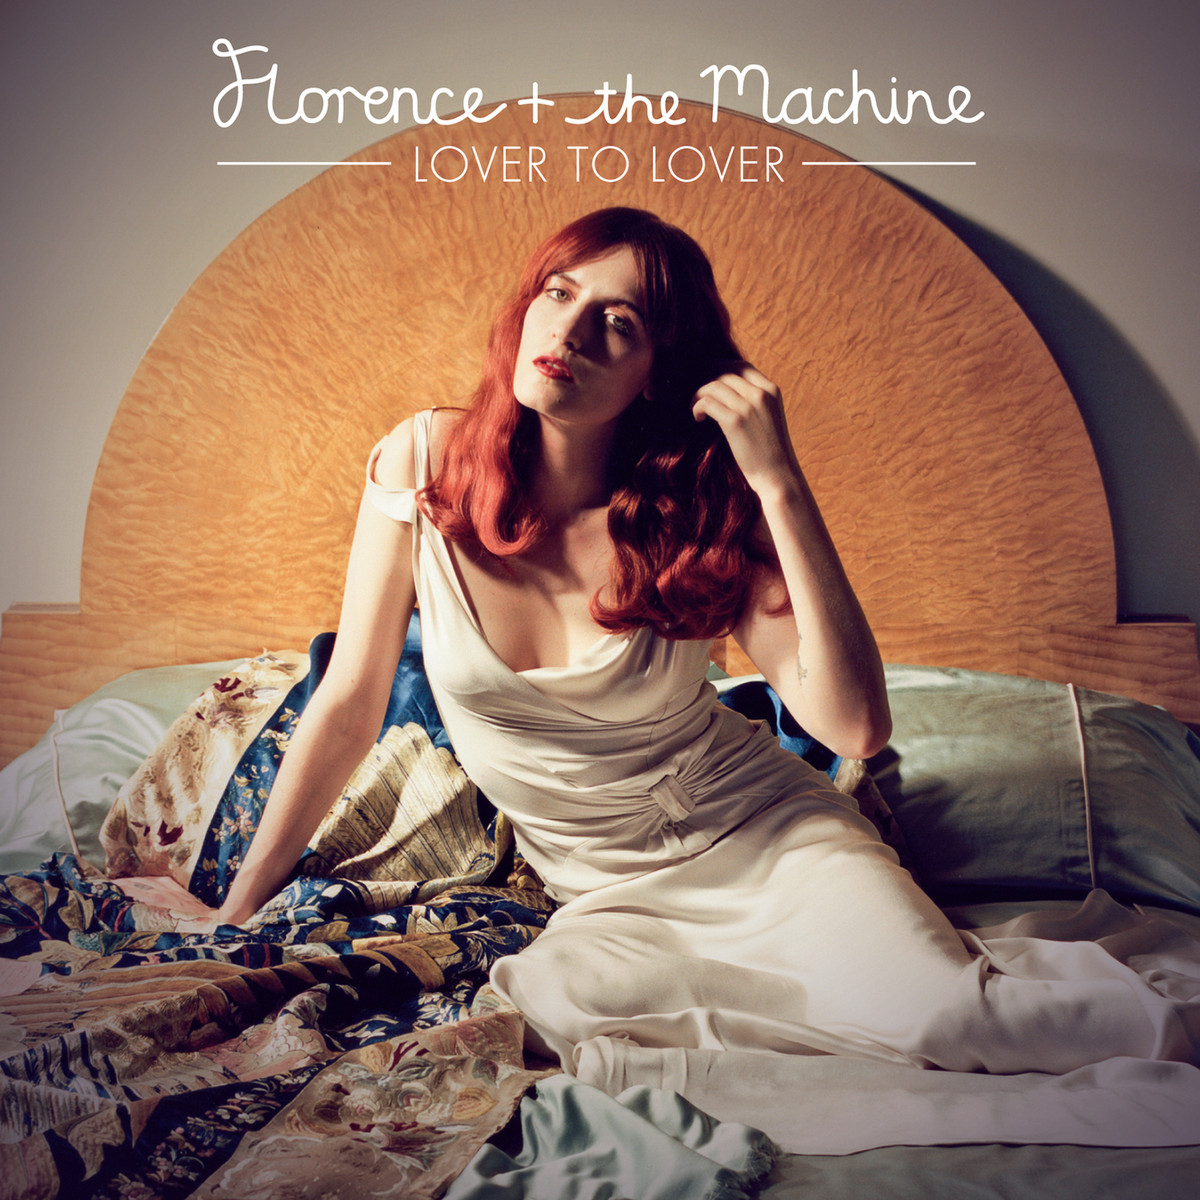 Florence + the Machine Lover to Lover official single EP artwork